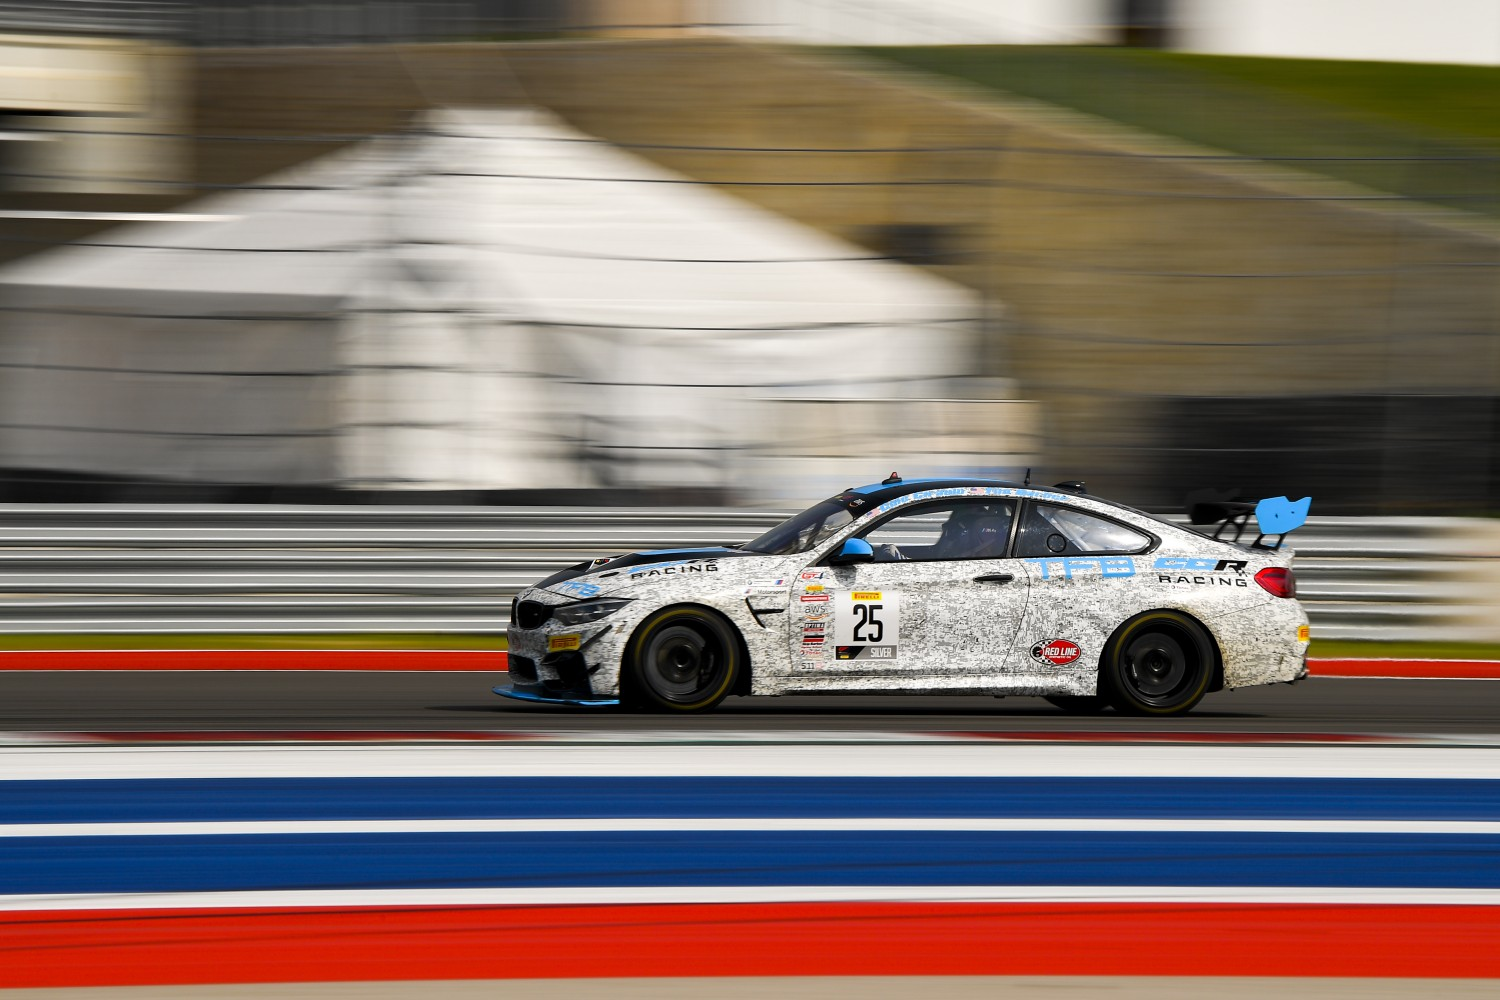 #25 BMW M4 GT4 of Cole Ciraulo and Tim Barber,CCR Team TFB, GT4 SprintX,      2020 SRO Motorsports Group - COTA2, Austin TX Photographer: Gavin Baker/SRO | © 2020 Gavin Baker